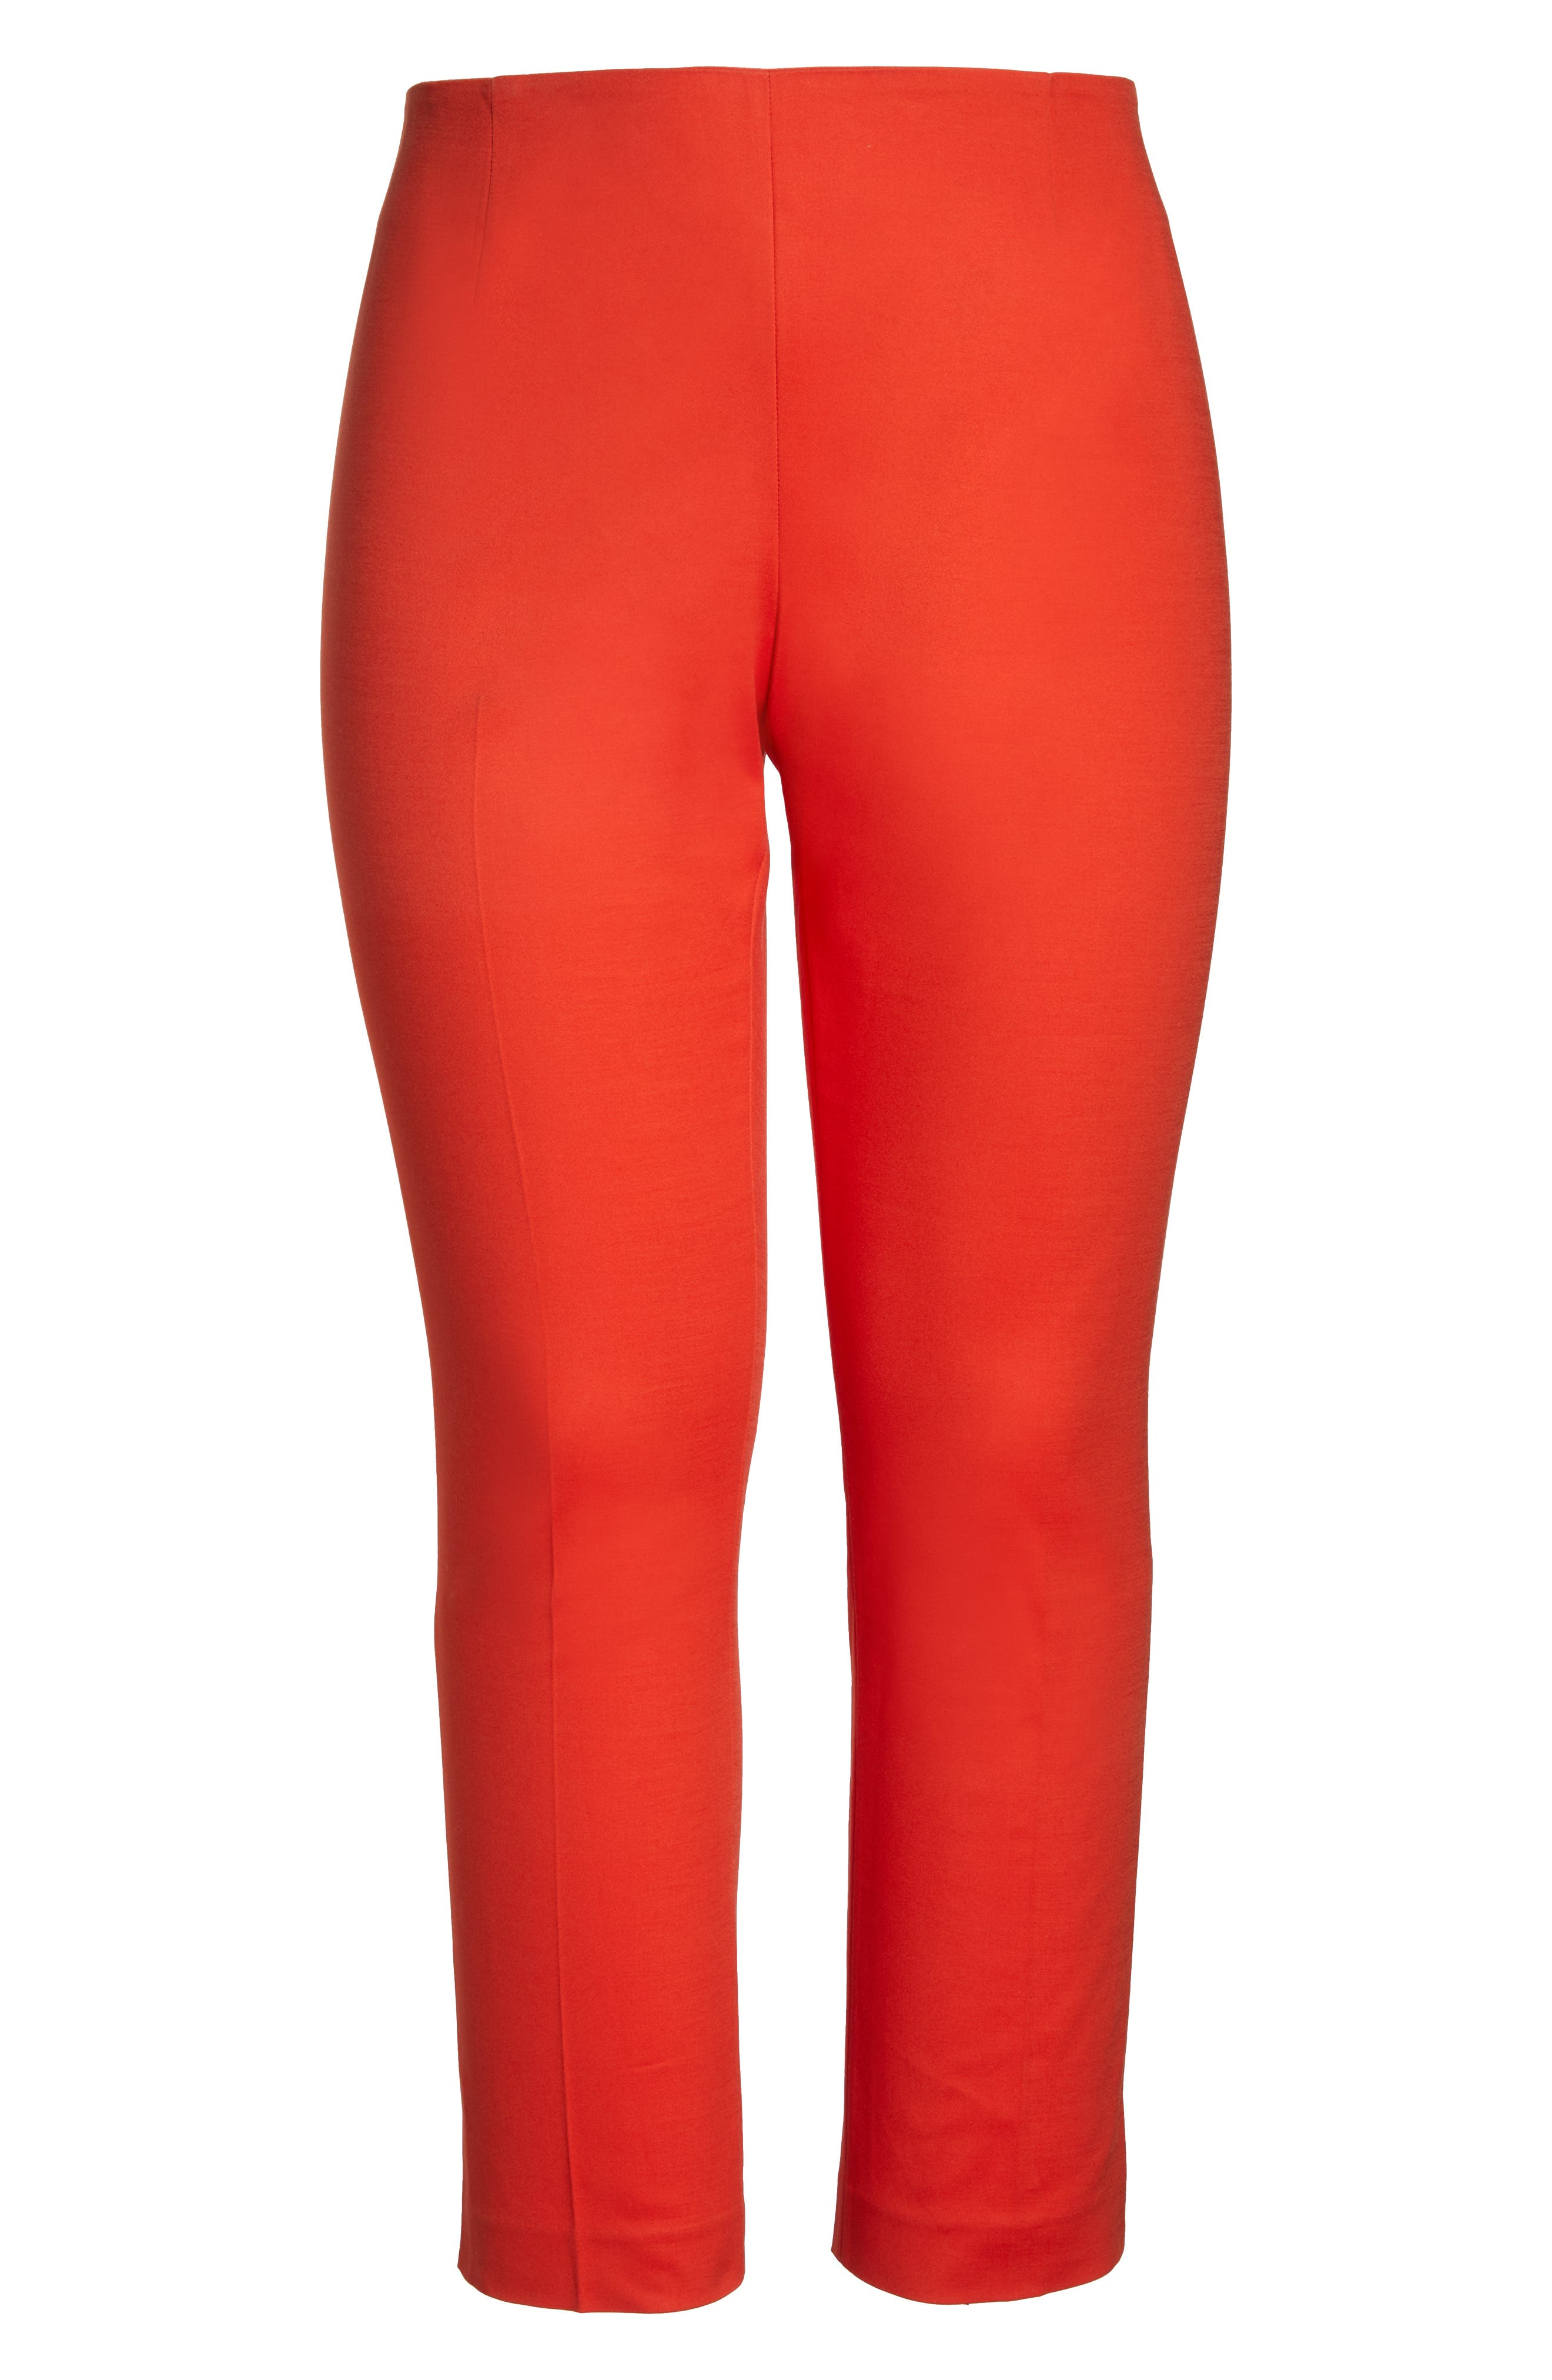 VINCE CAMUTO, Vented Cuff Slim Pants, Alternate thumbnail 7, color, 600